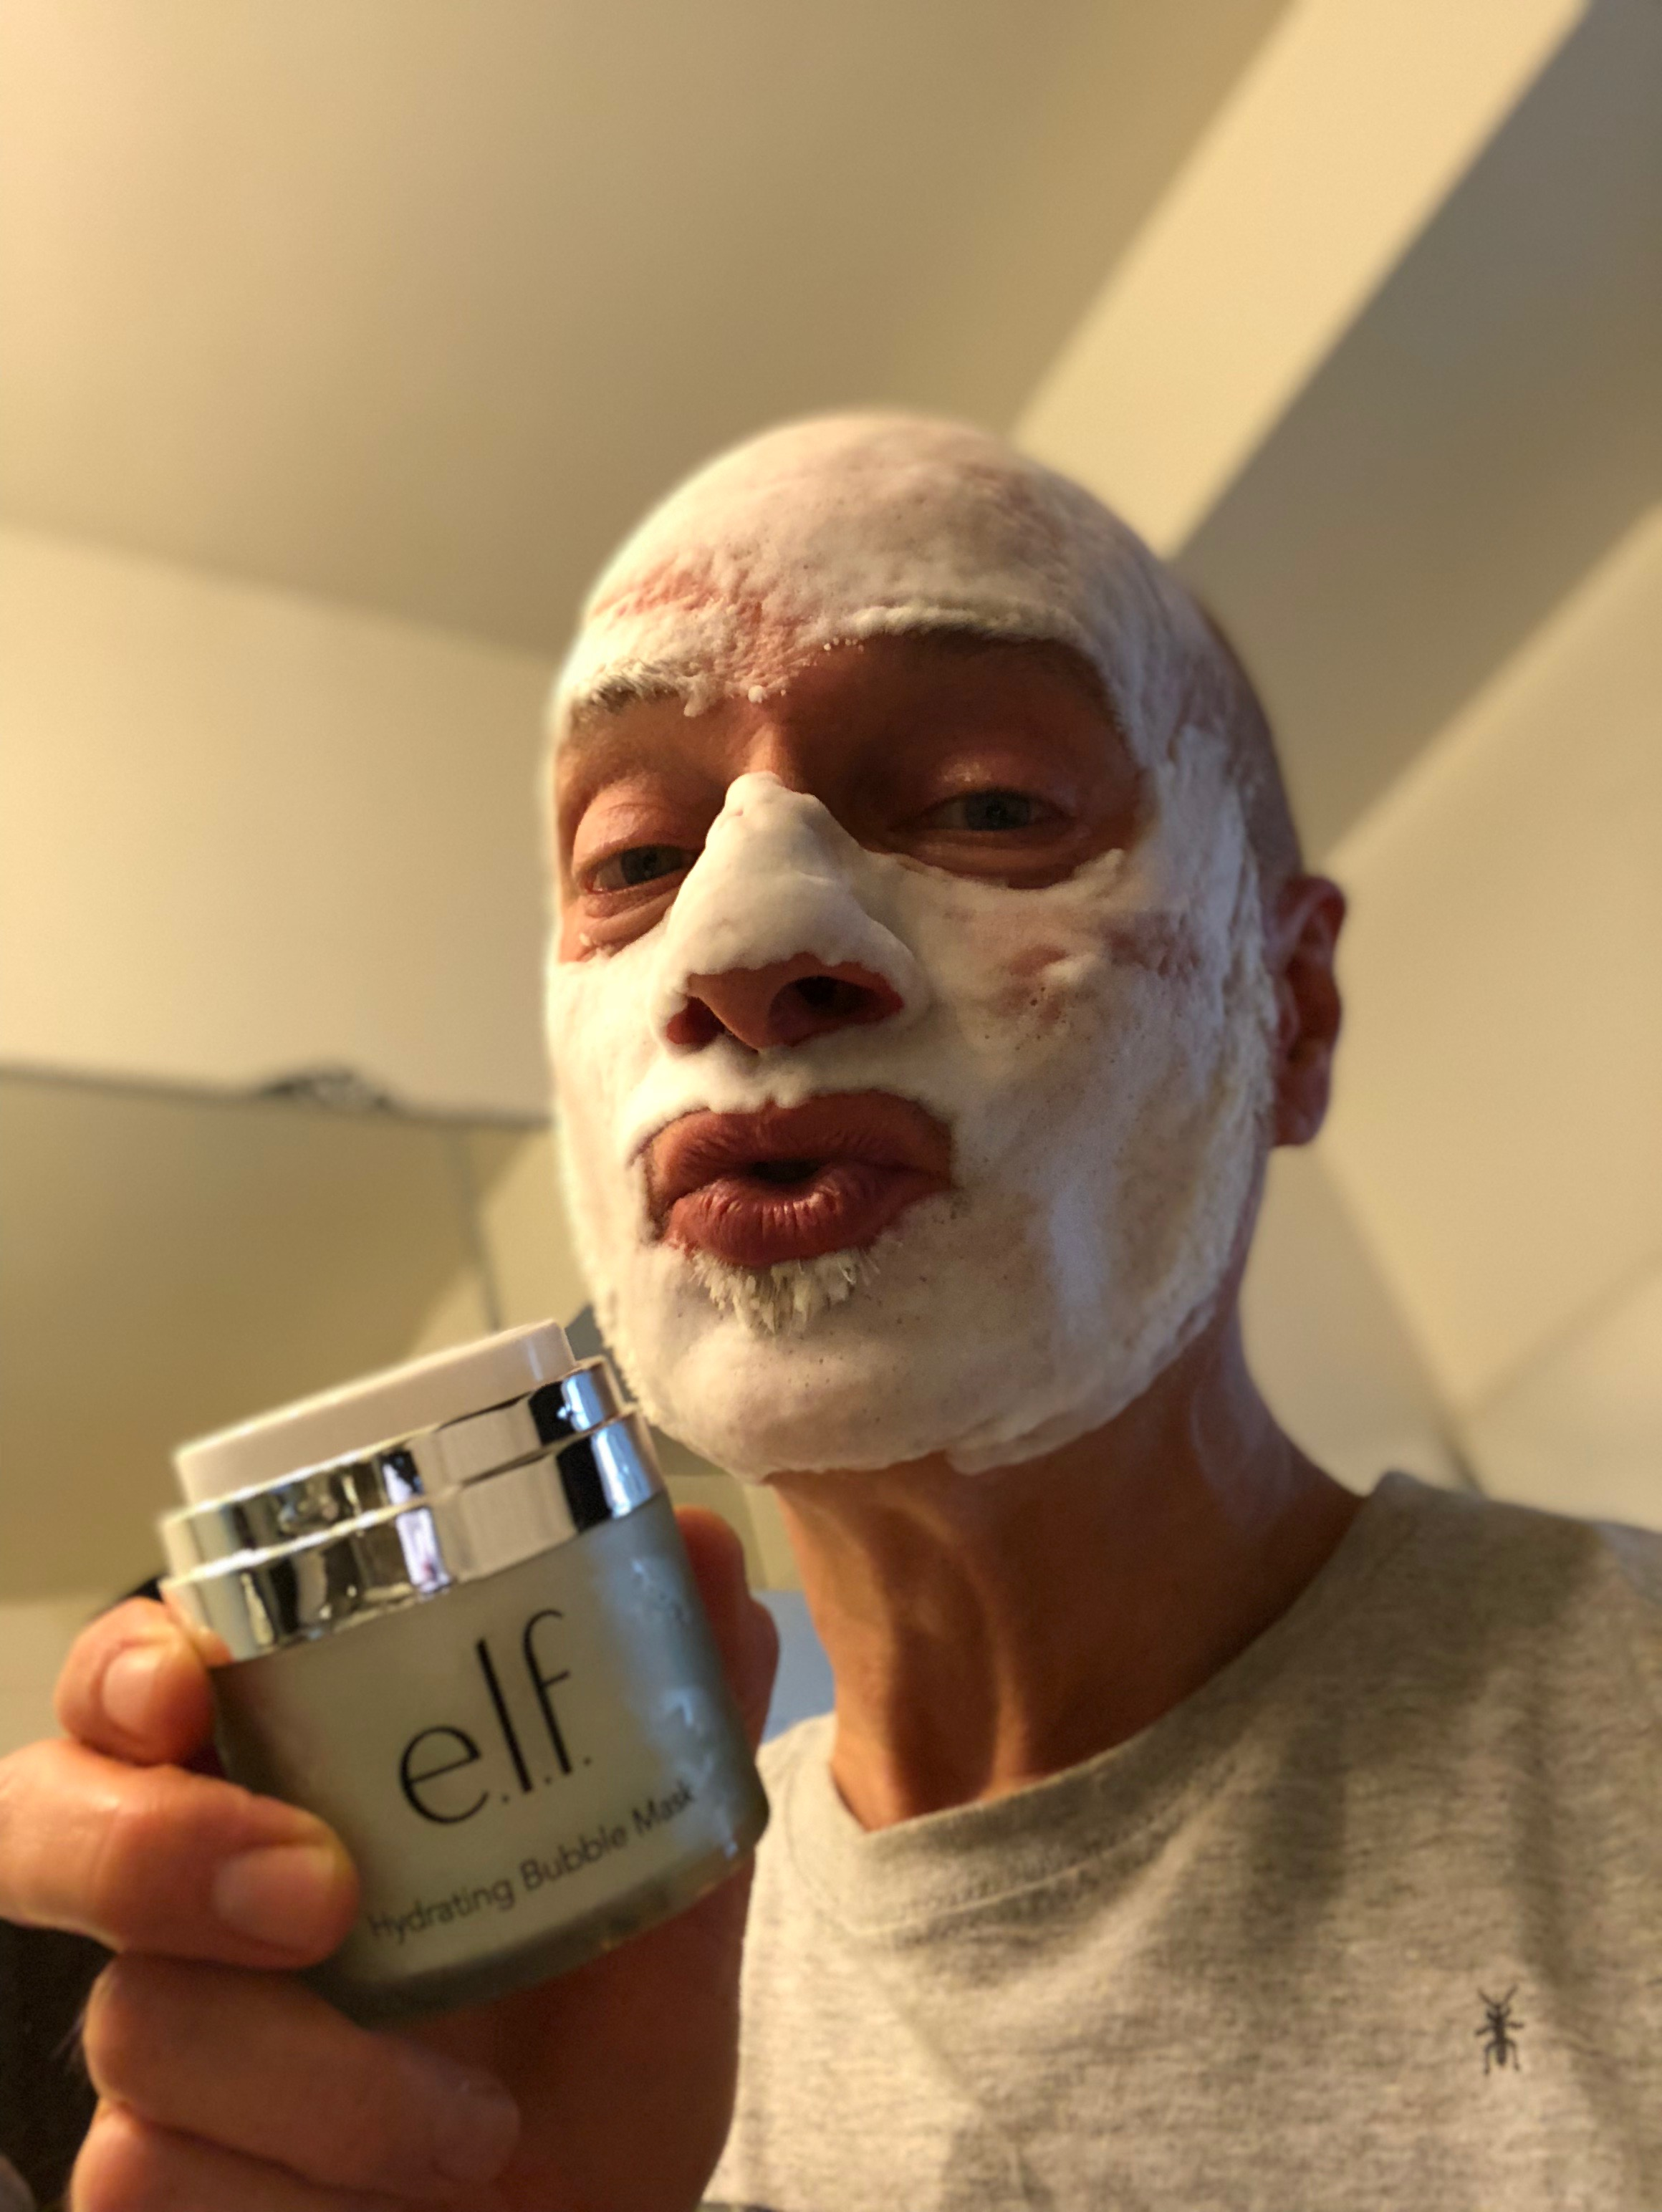 e.l.f.'s Hydrating Bubble Mask feels great, leaves skin fresh and costs $14.